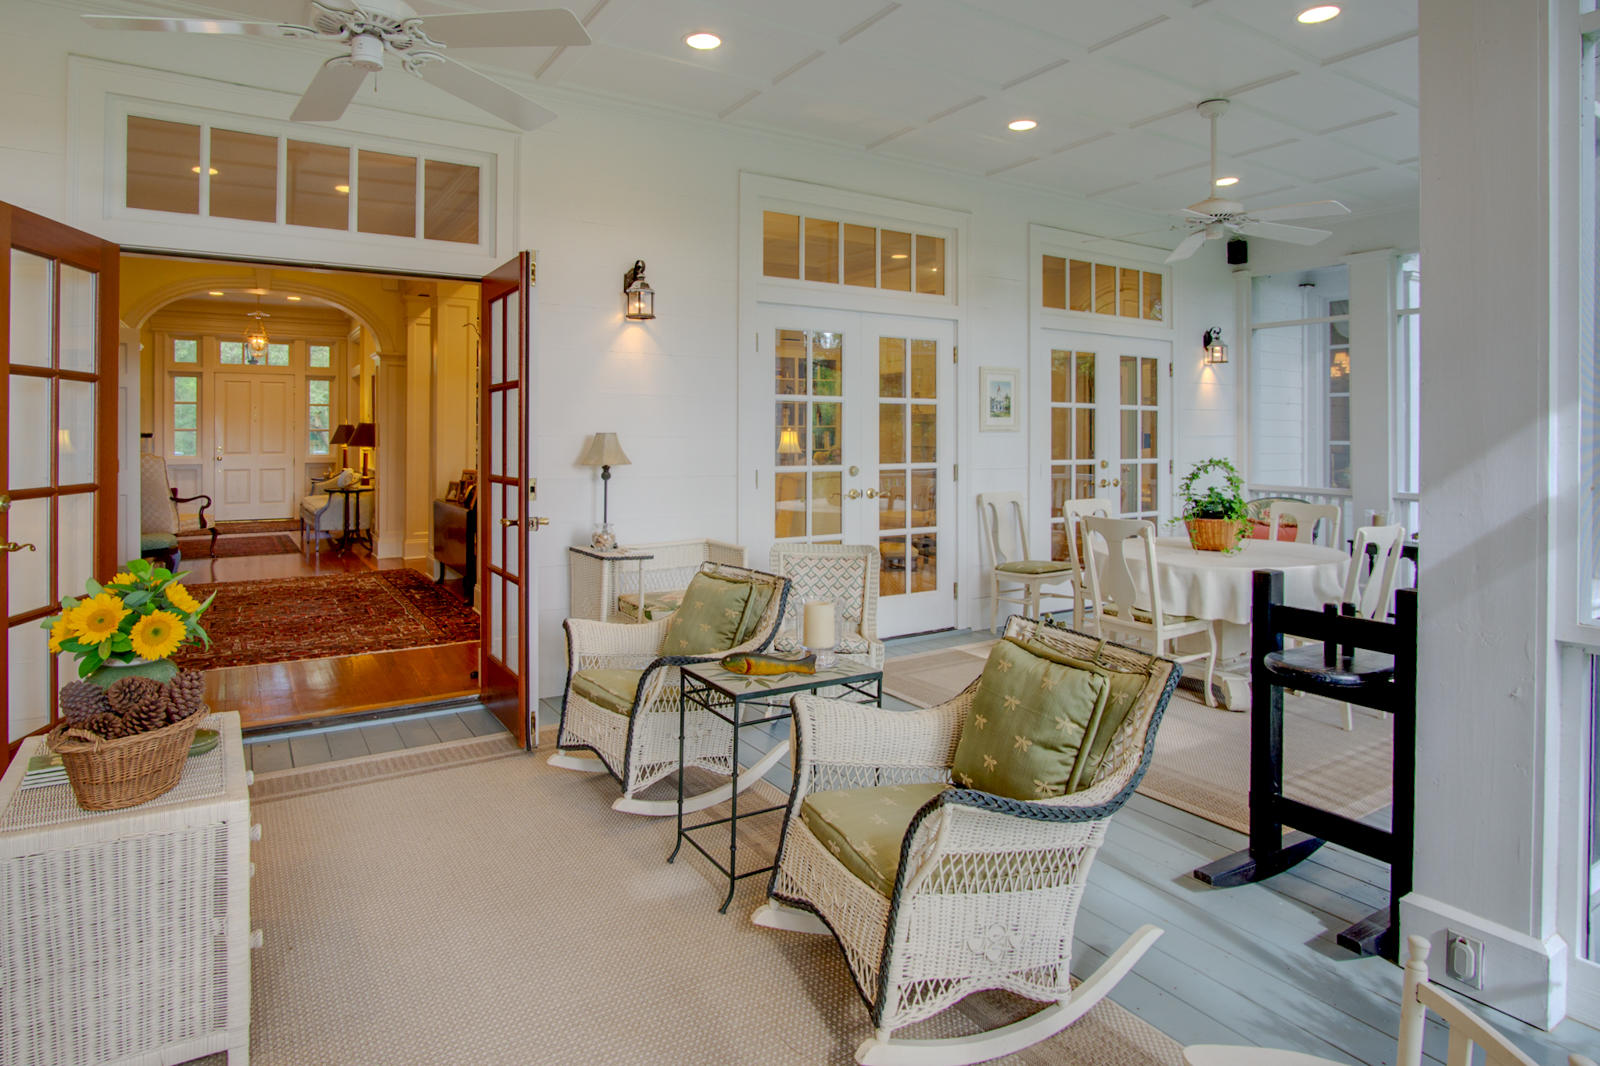 Bull Point Plantation Homes For Sale - 123 Bull Point, Seabrook, SC - 28